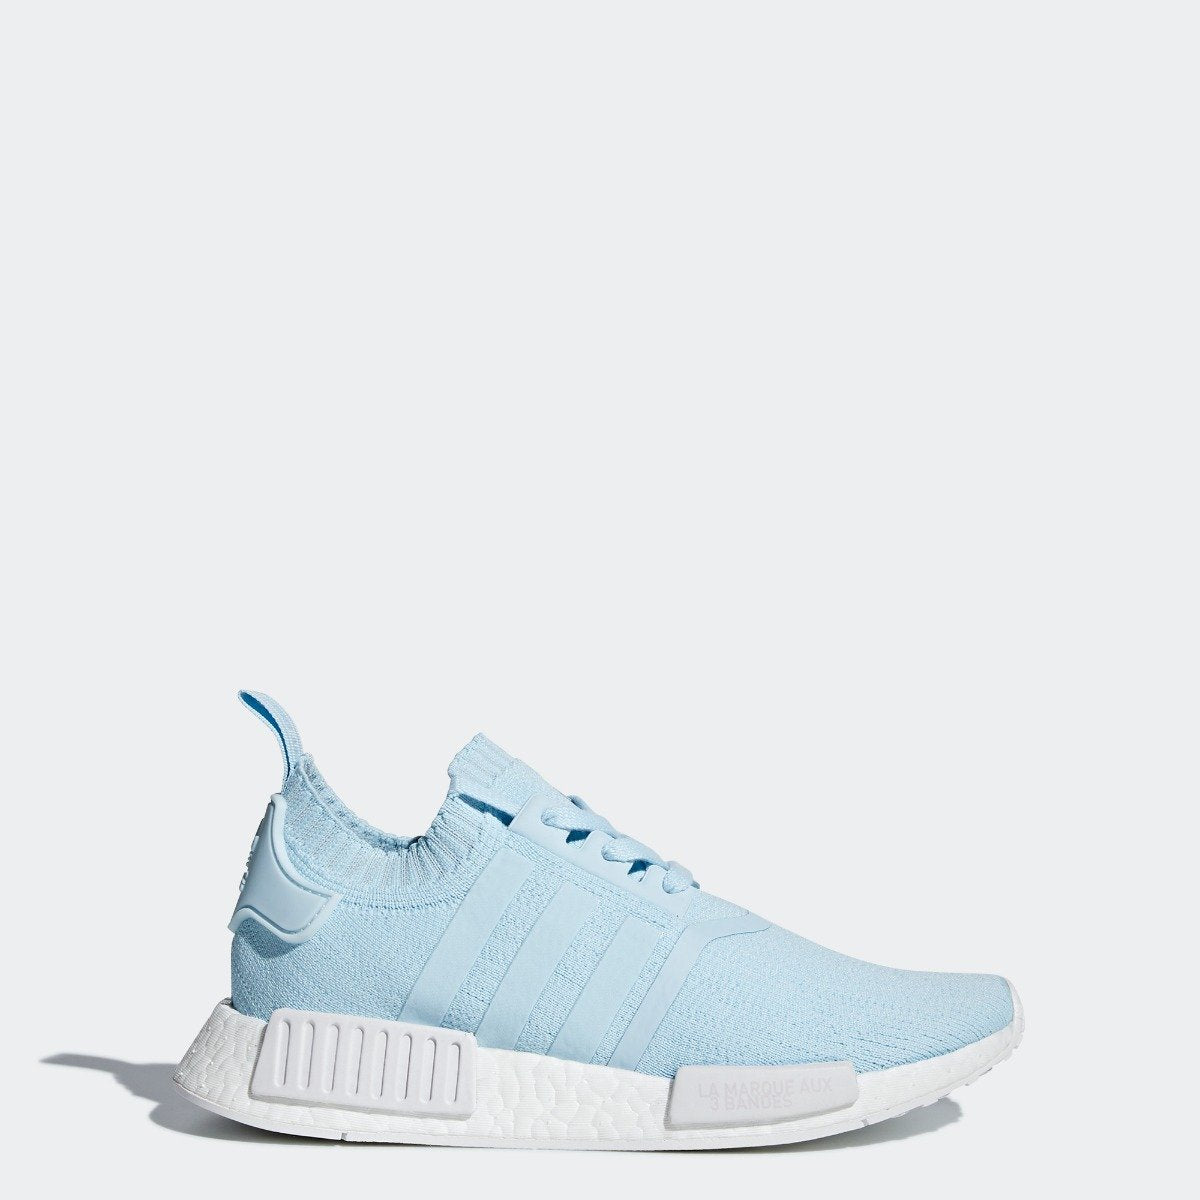 Women's adidas Originals NMD R1 Primeknit Shoes Ice Blue